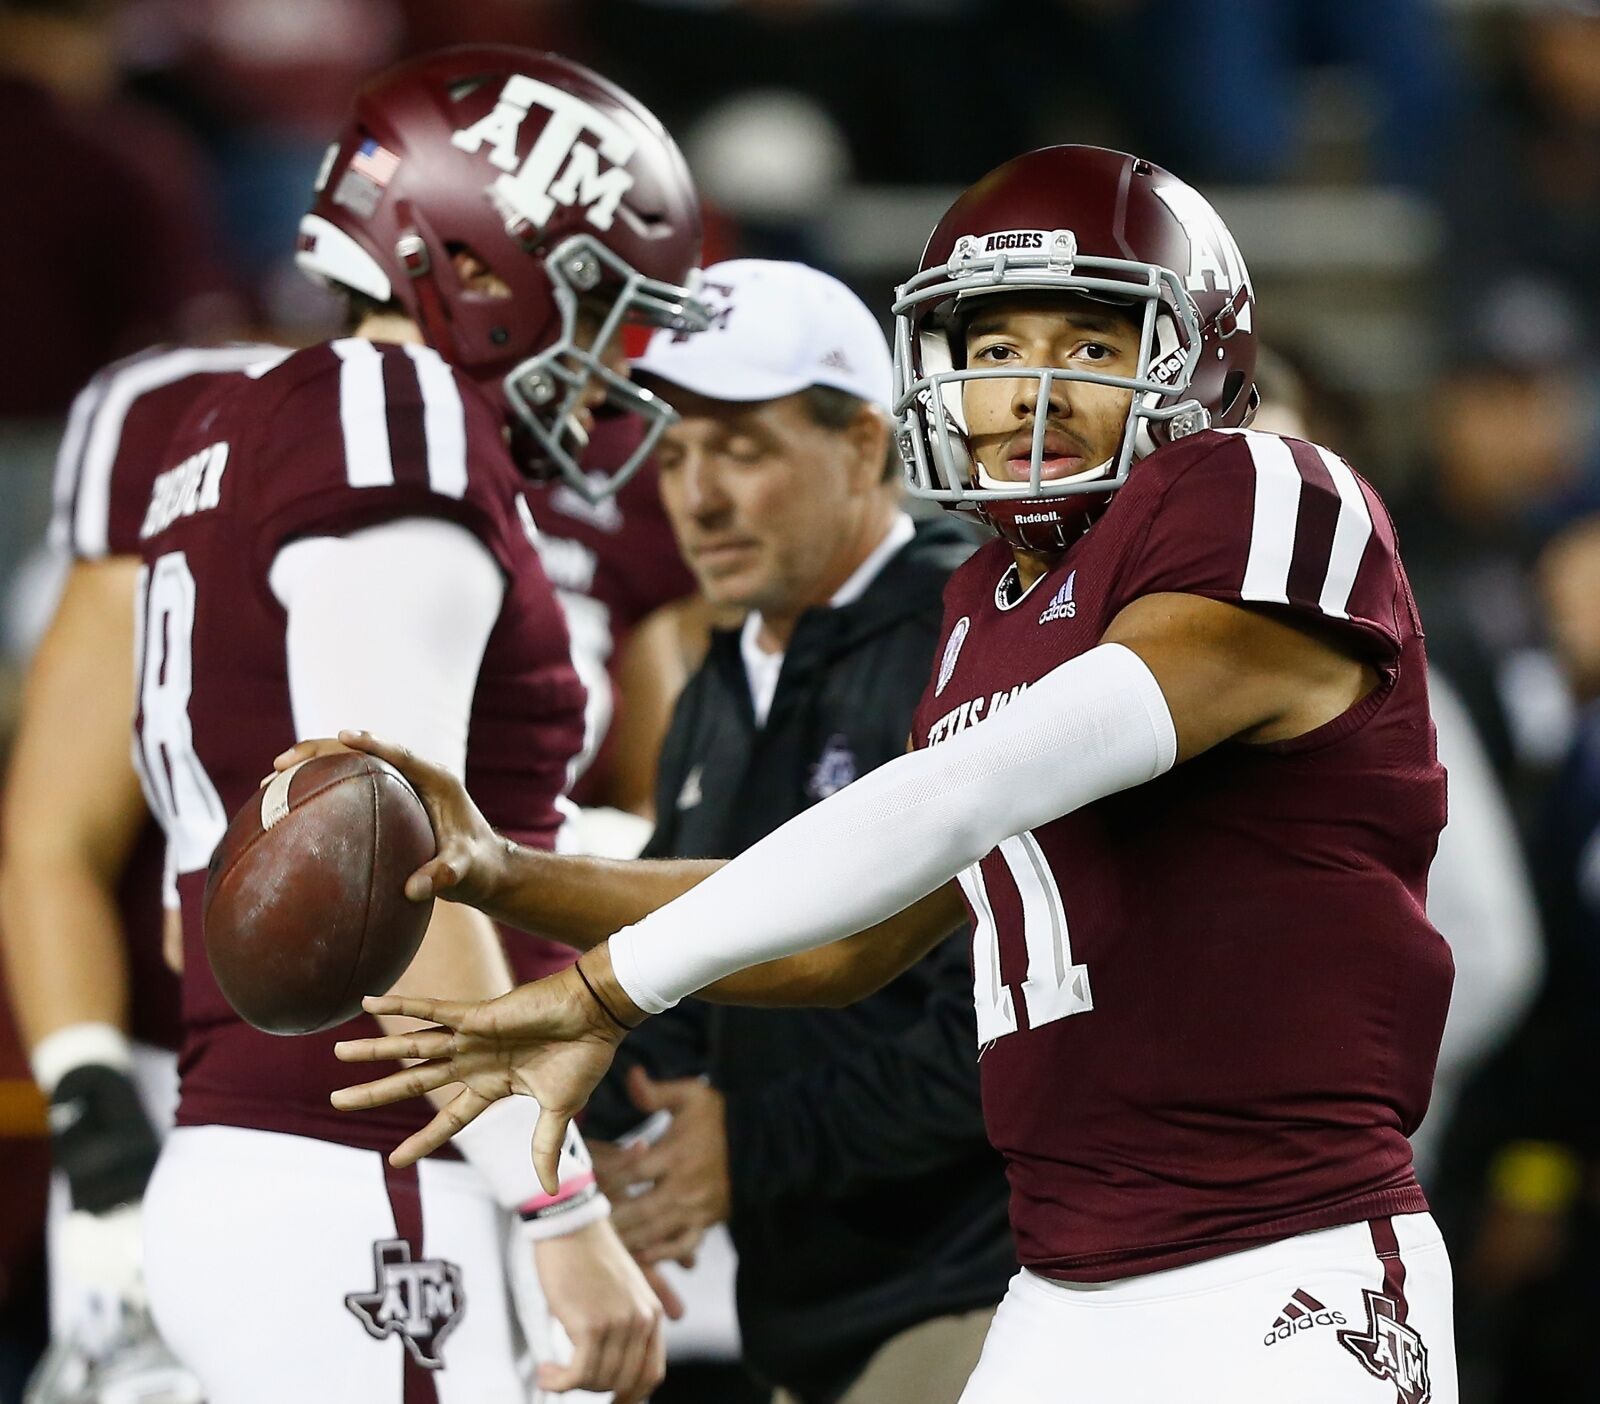 Texas A&M football: What can we expect from Kellen Mond in 2019?